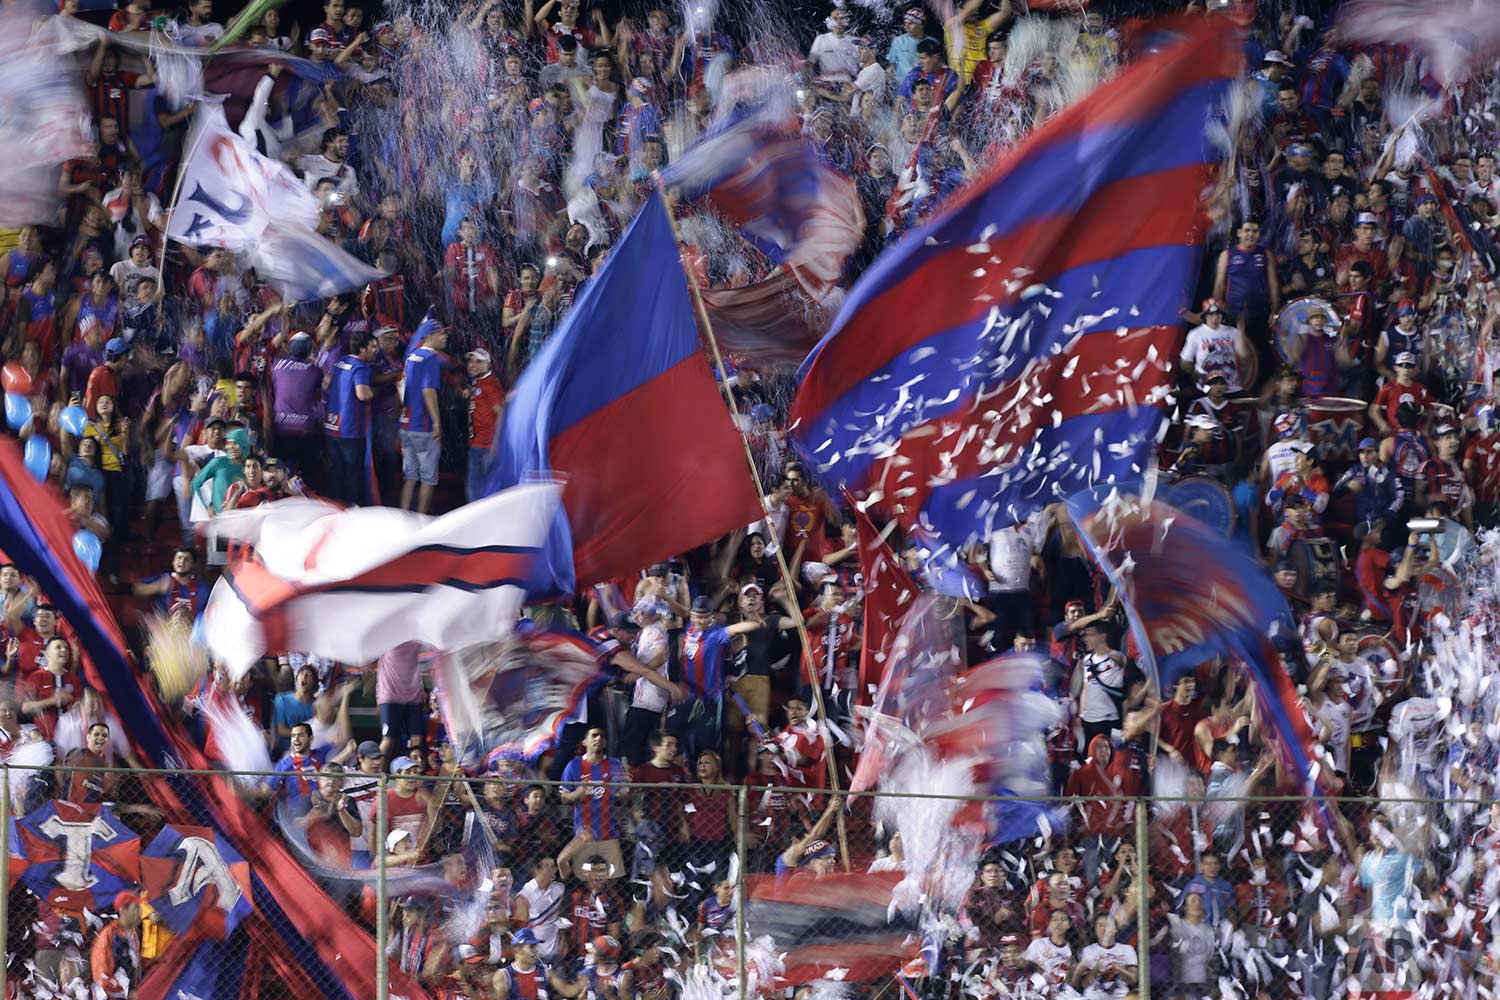 Fans of Paraguay's Cerro Porteno cheer for their team during a Copa Sudamericana soccer match against Uruguay's Boston River in Asuncion, Paraguay, Tuesday, July 11, 2017. (AP Photo/Jorge Saenz)